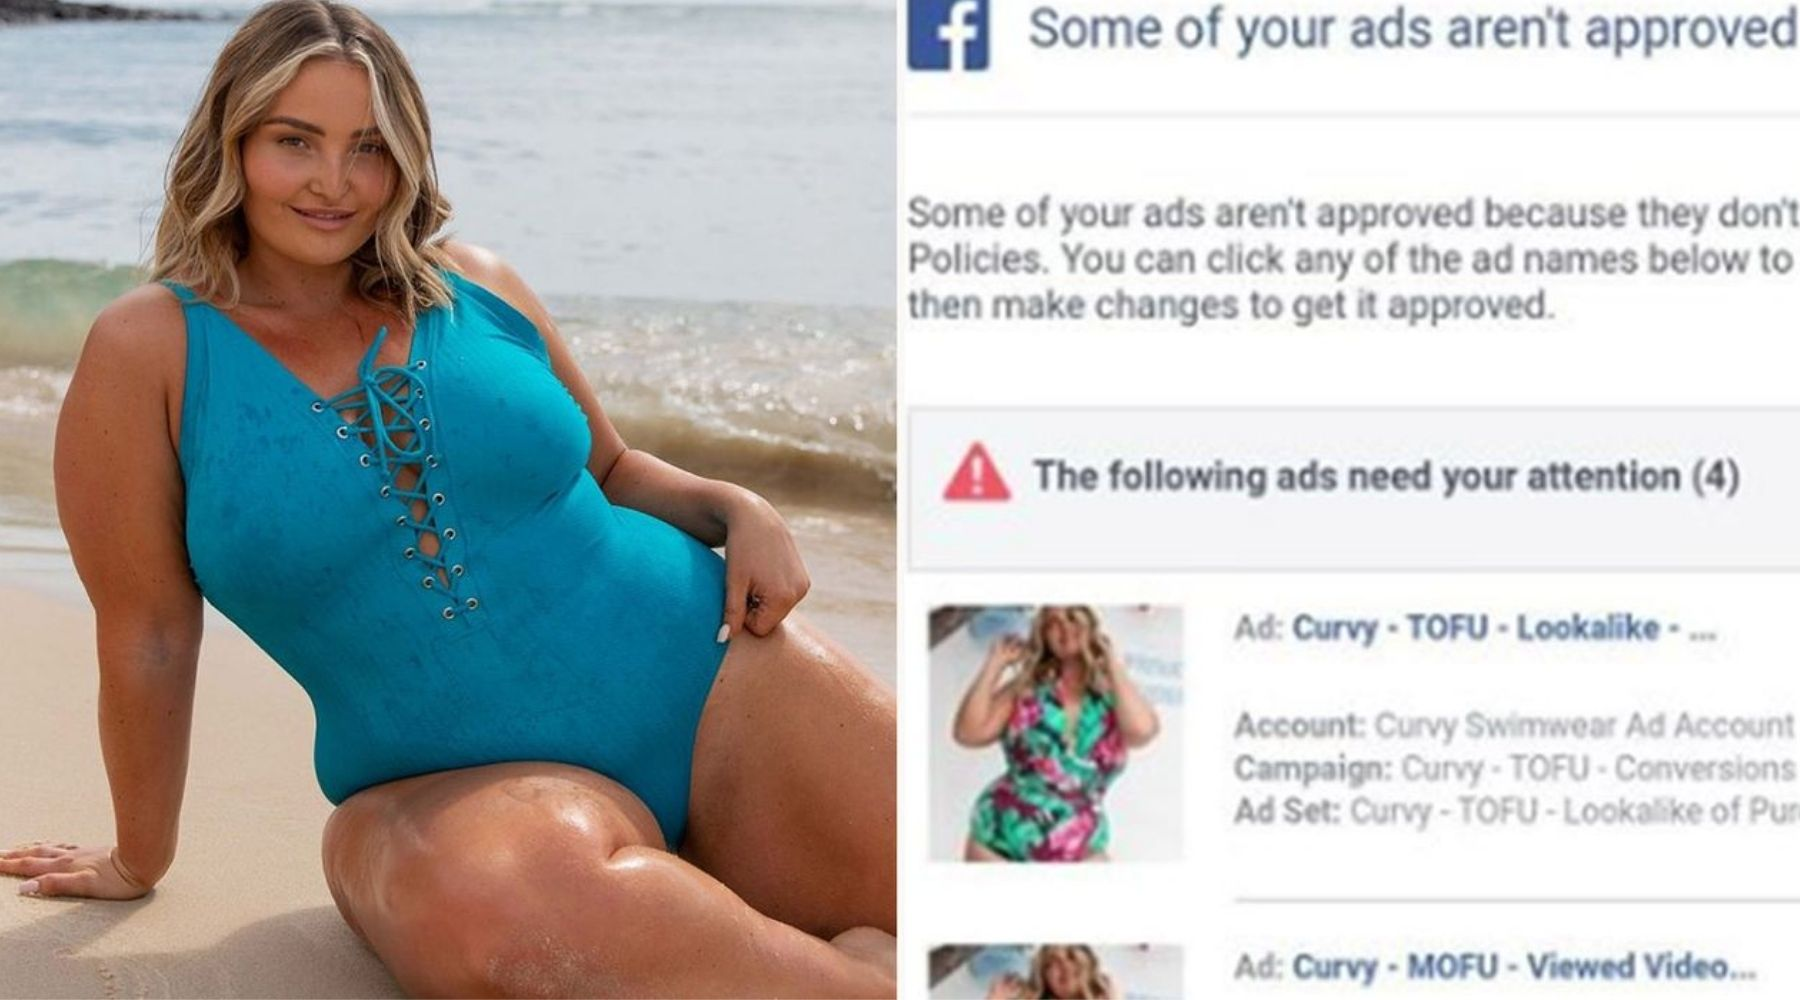 Capriosca featured in 9Honey article about rejected Facebook ads